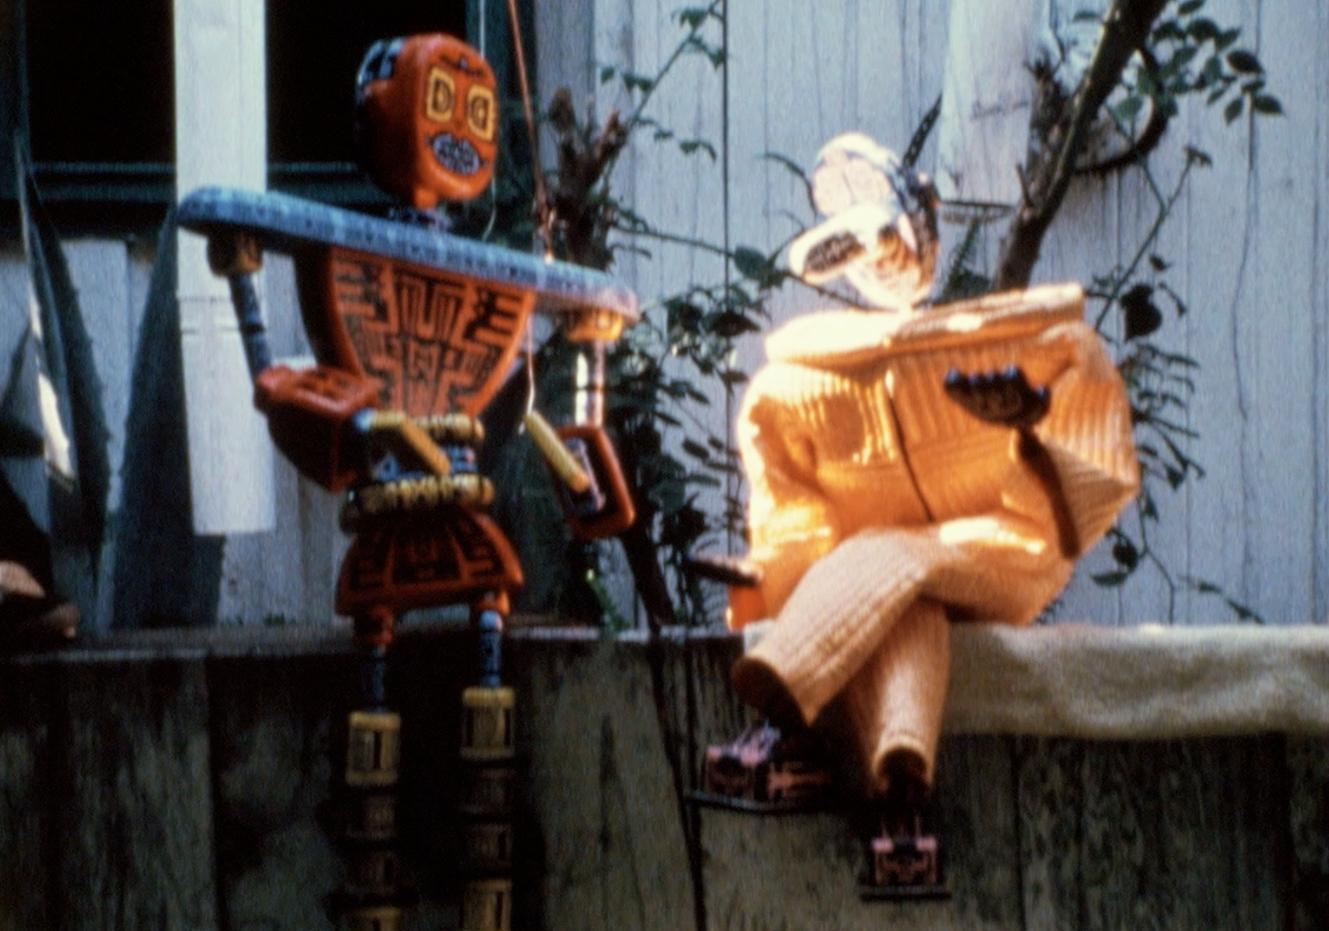 Two orange robots sit outdoors facing each other as if in conversation.